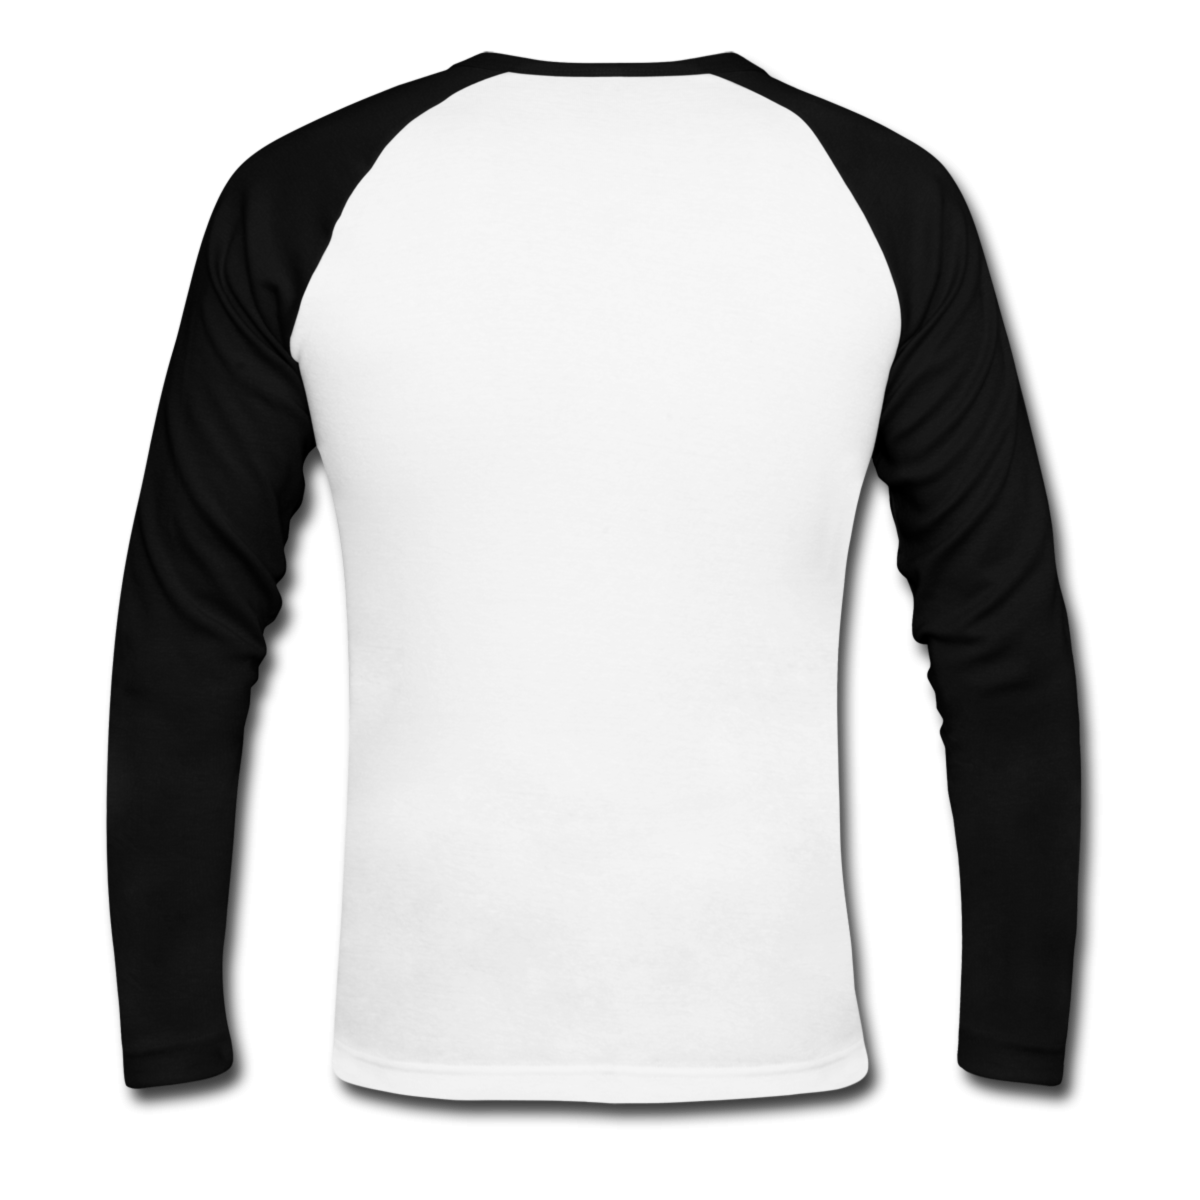 Black tshirt front and back Vector  Free Download